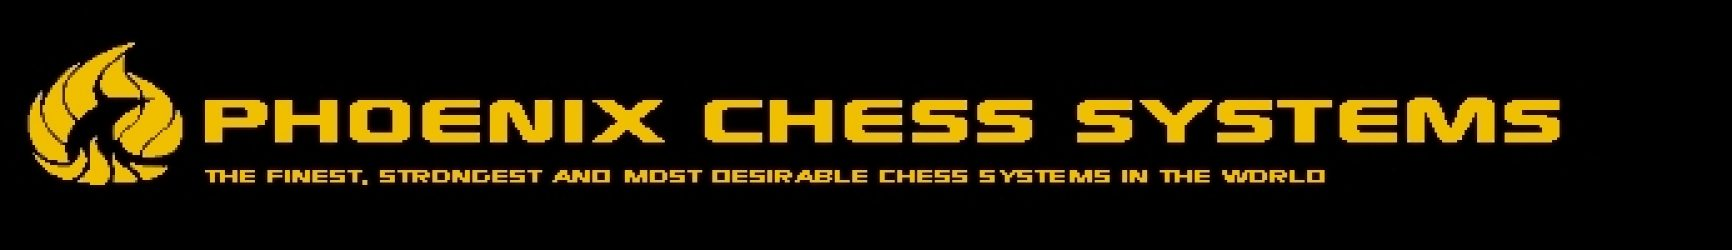 PHOENIX CHESS SYSTEMS